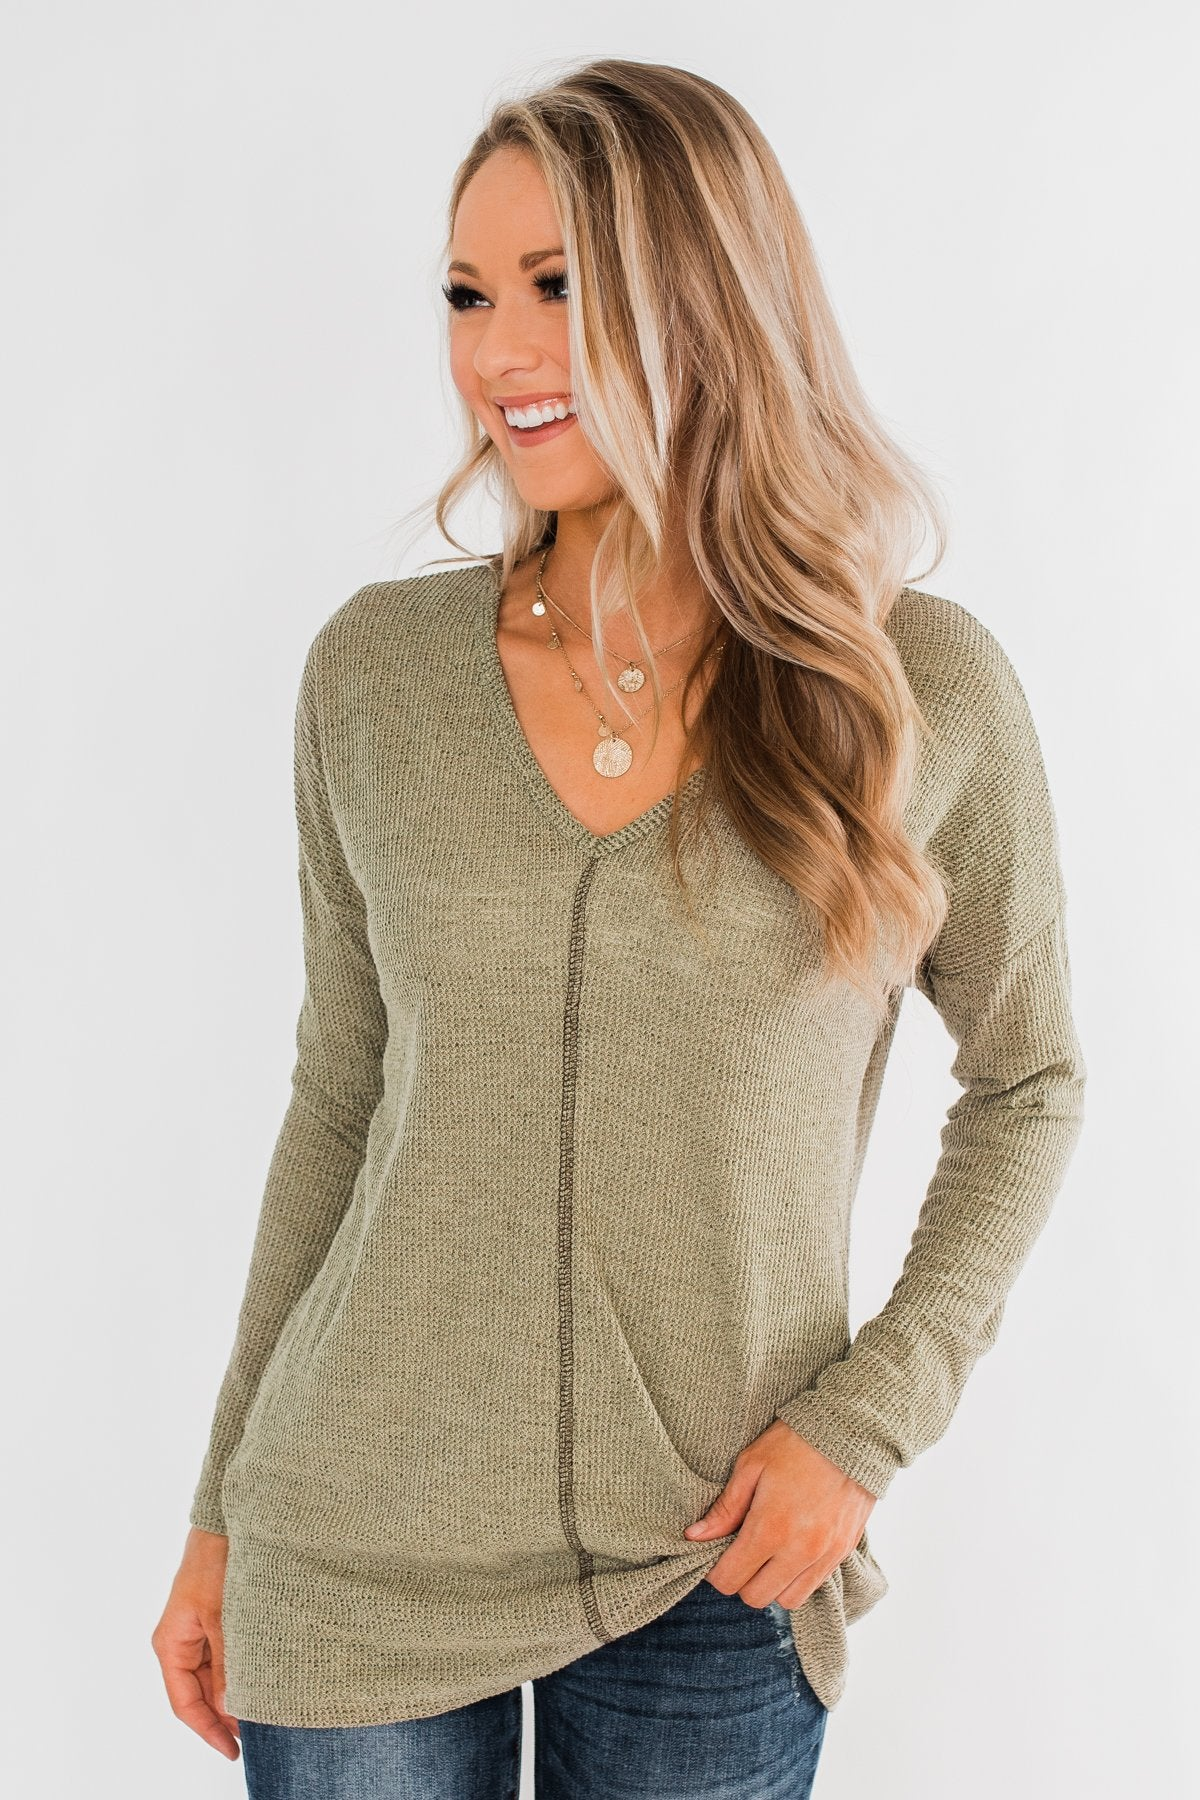 Simple As Can Be Knitted Top- Olive